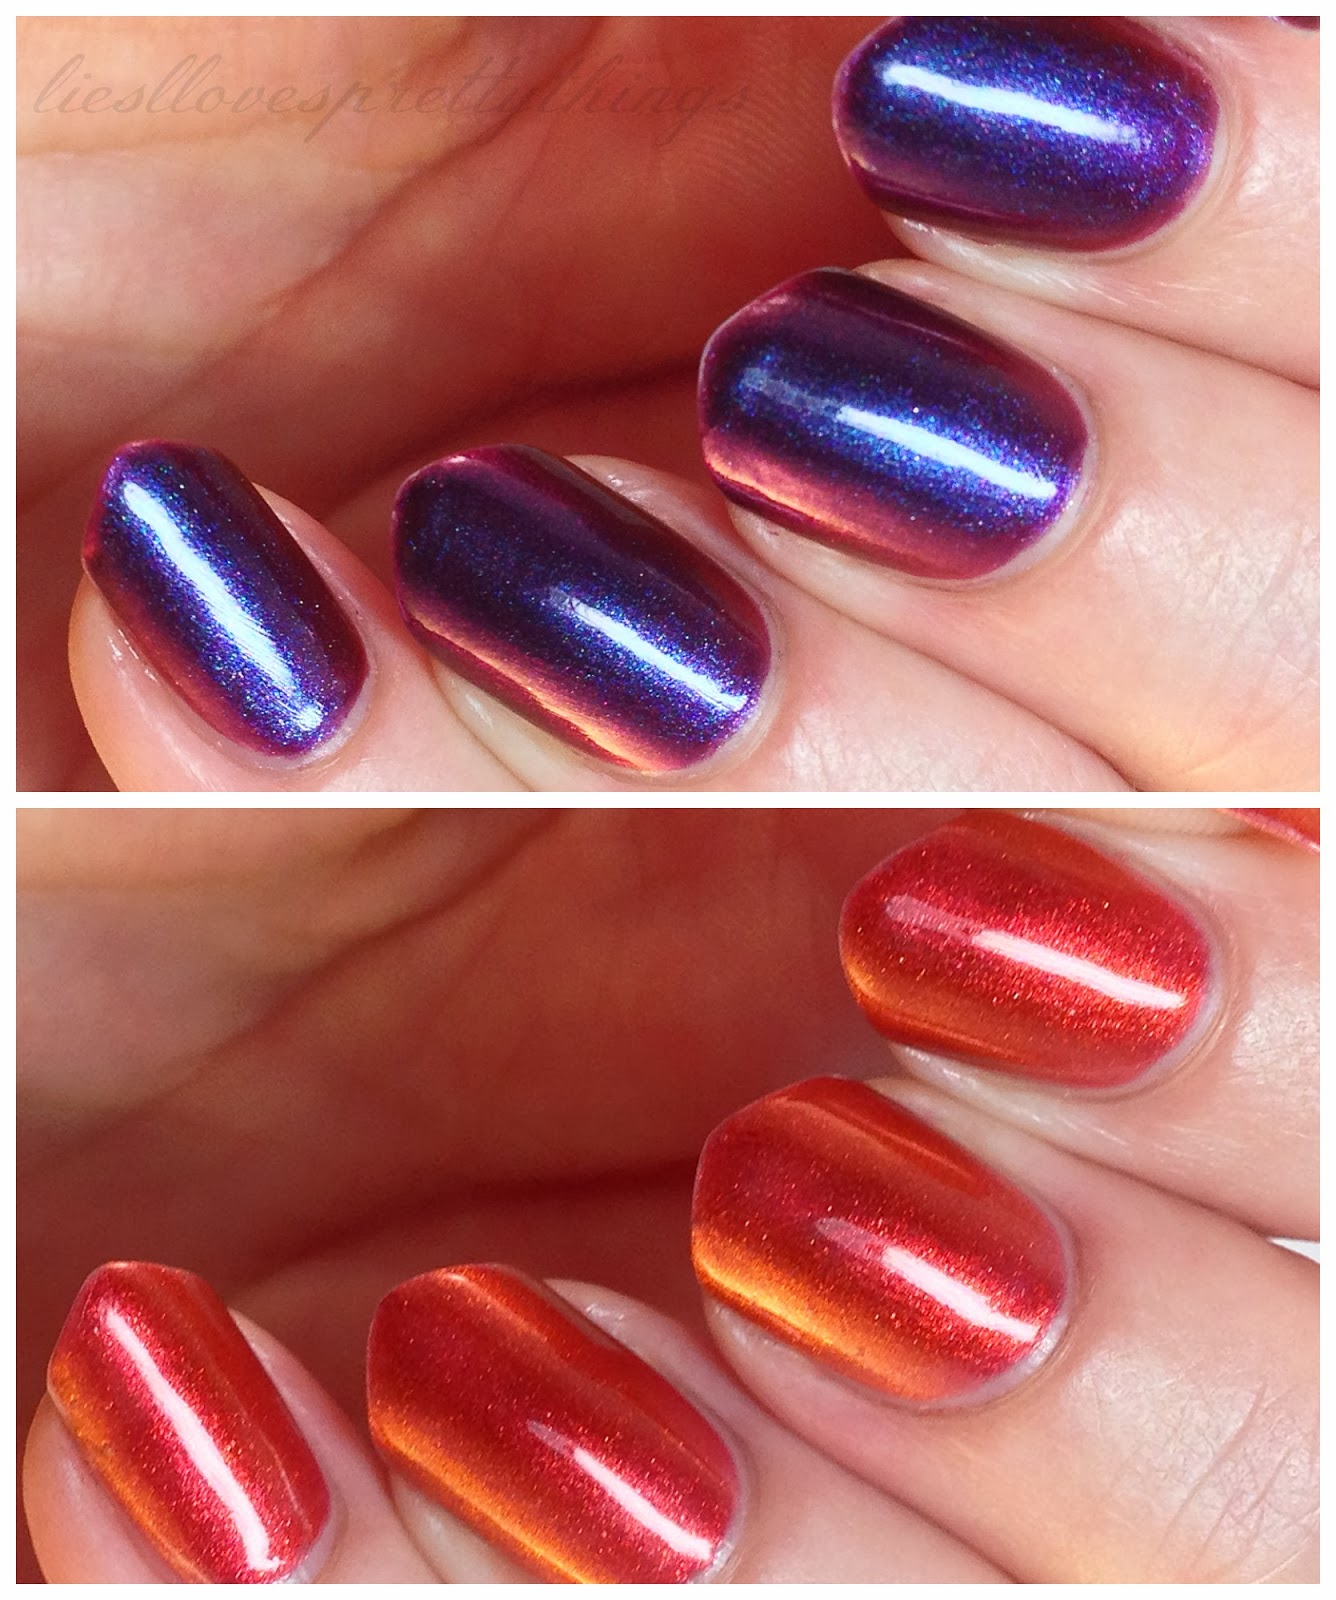 Sally Hansen Nail Prisms